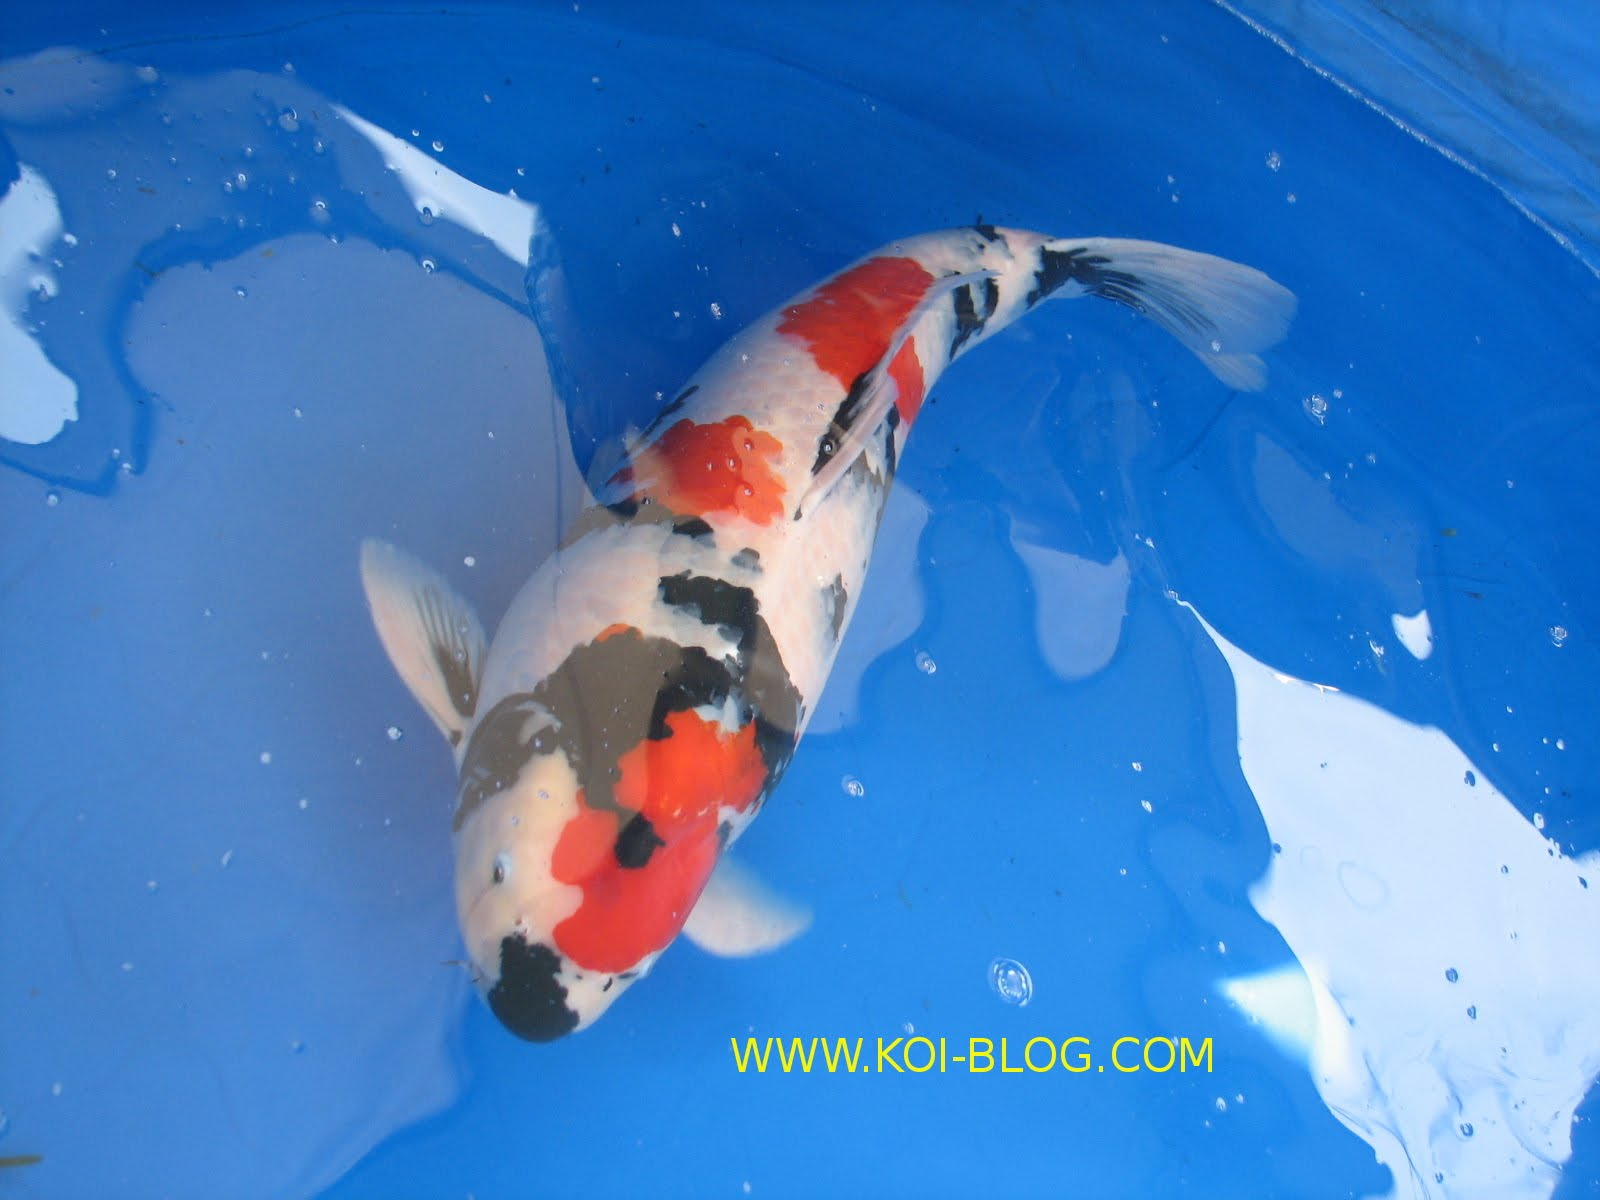 Koi blog champion showa for Champion koi fish